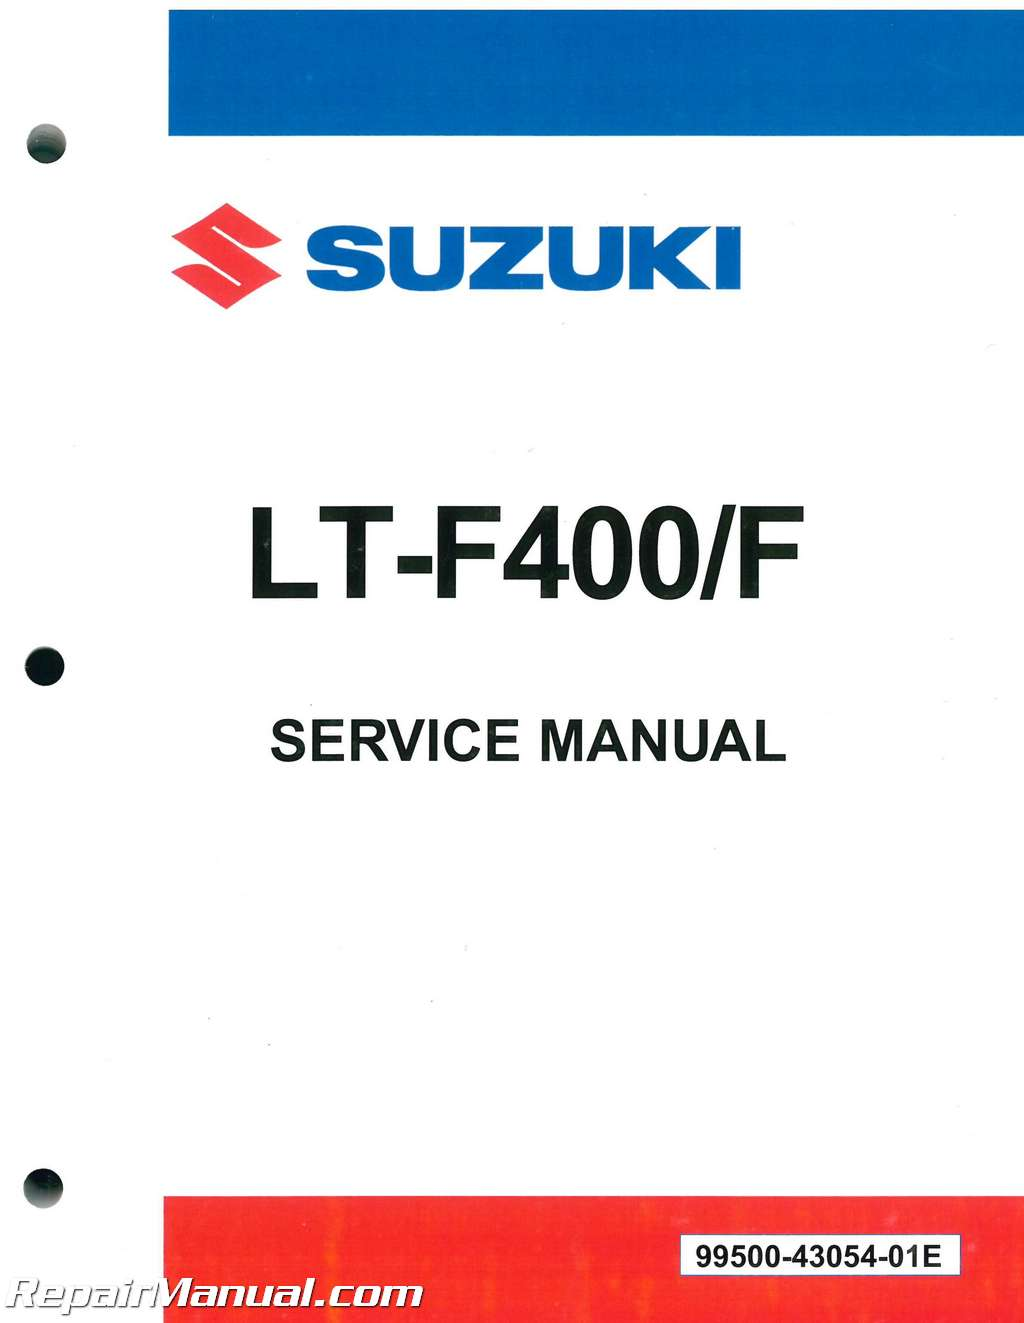 Suzuki Eiger 400 Manual LT F400 400F ATV 2002 2007 Service Manual_001 suzuki eiger wiring diagram suzuki drz 400 wiring diagram \u2022 free suzuki eiger 400 wiring diagram at mifinder.co